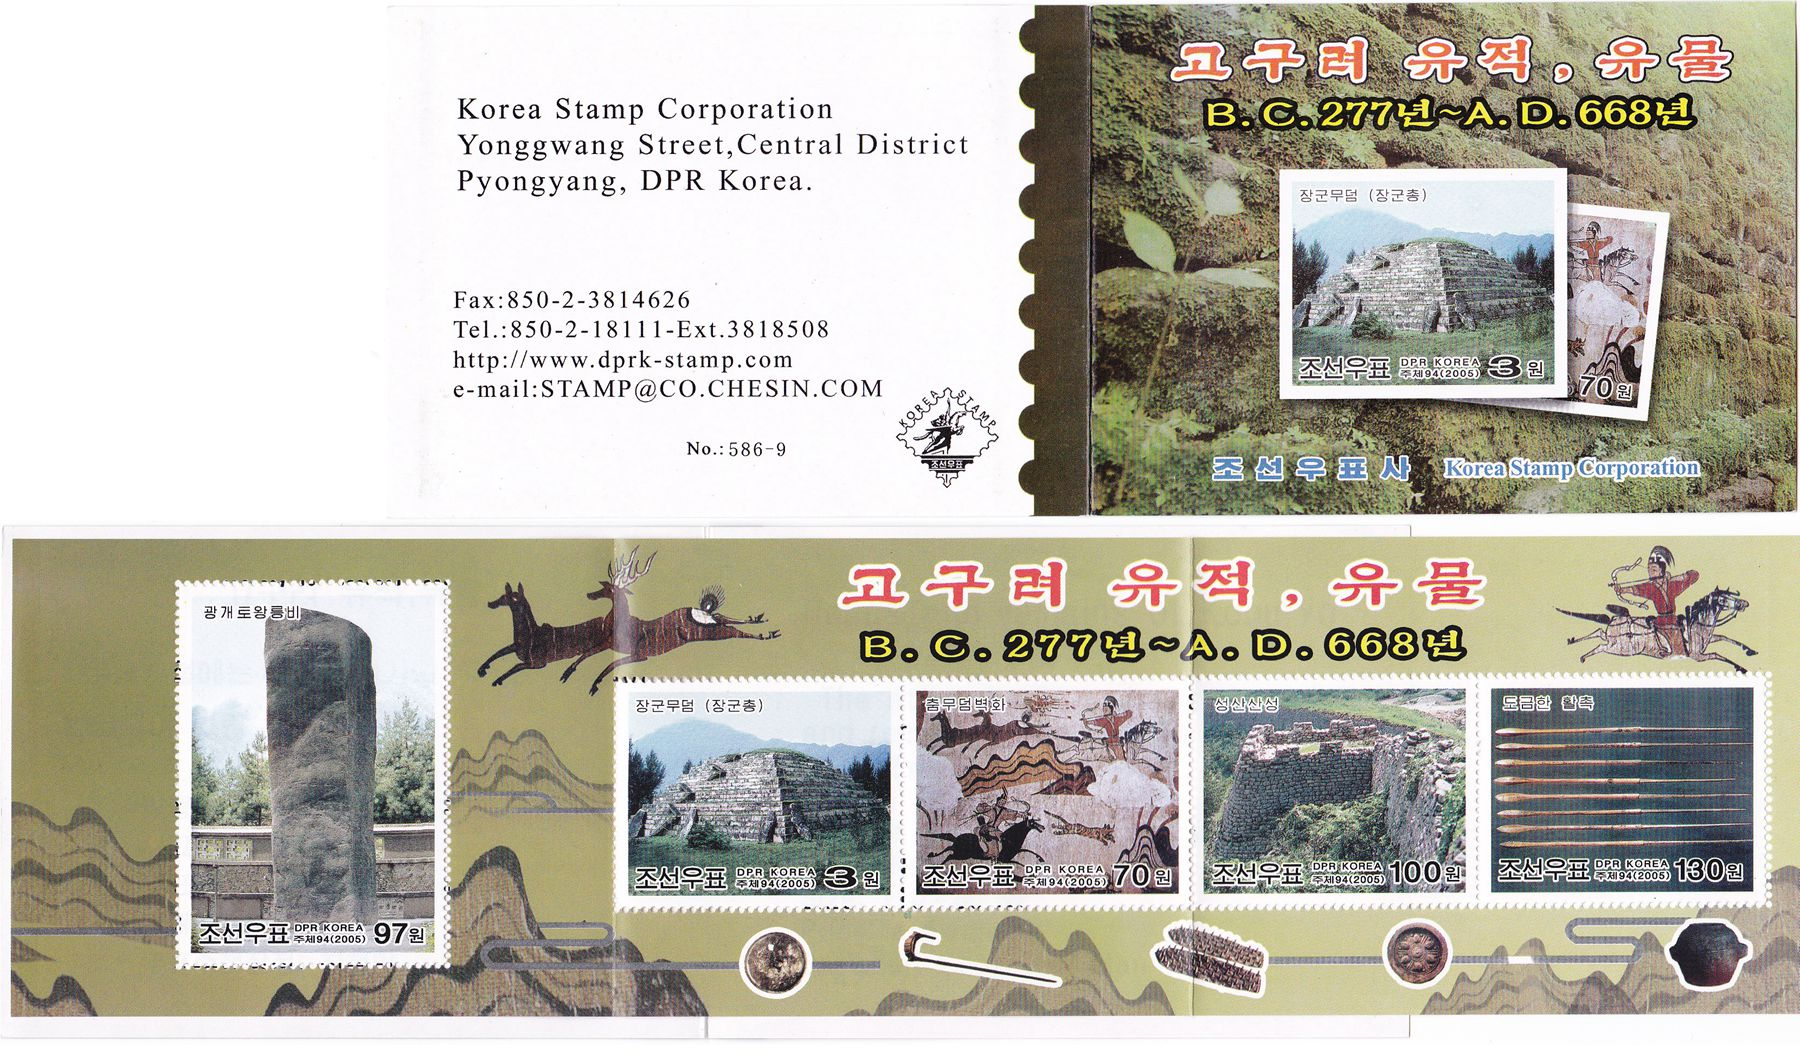 "L9088, Korea ""Koguryo Historic Site (BC277-AD668)"" Stamp Booklet, 2005"